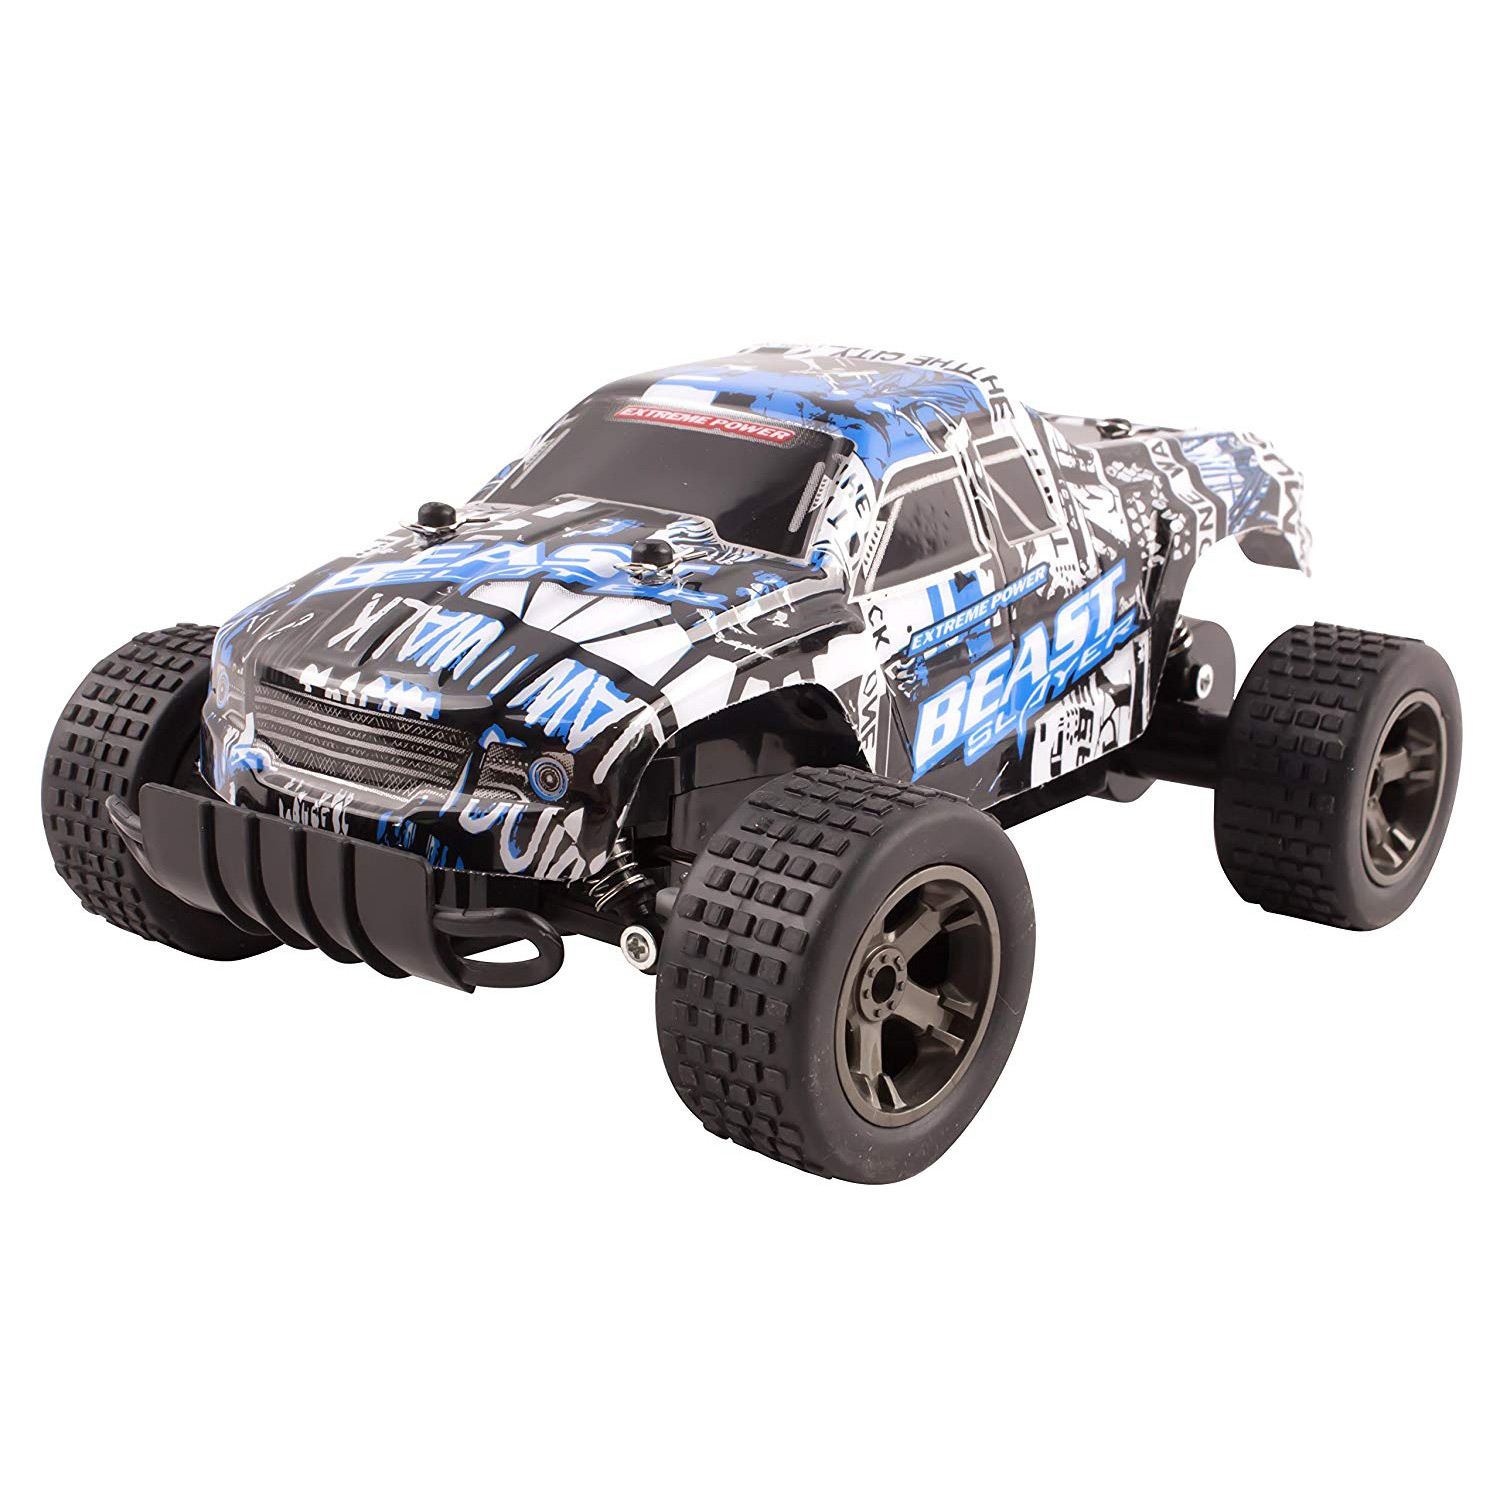 RC Truck Beast Cheetah King Buggy Remote Control 2.4 GHz System 1:18 Scale Size Car RTR With Working Suspension High Speed Radio Control Off-Road Hobby Truggy Rechargeable Battery Included (Blue)